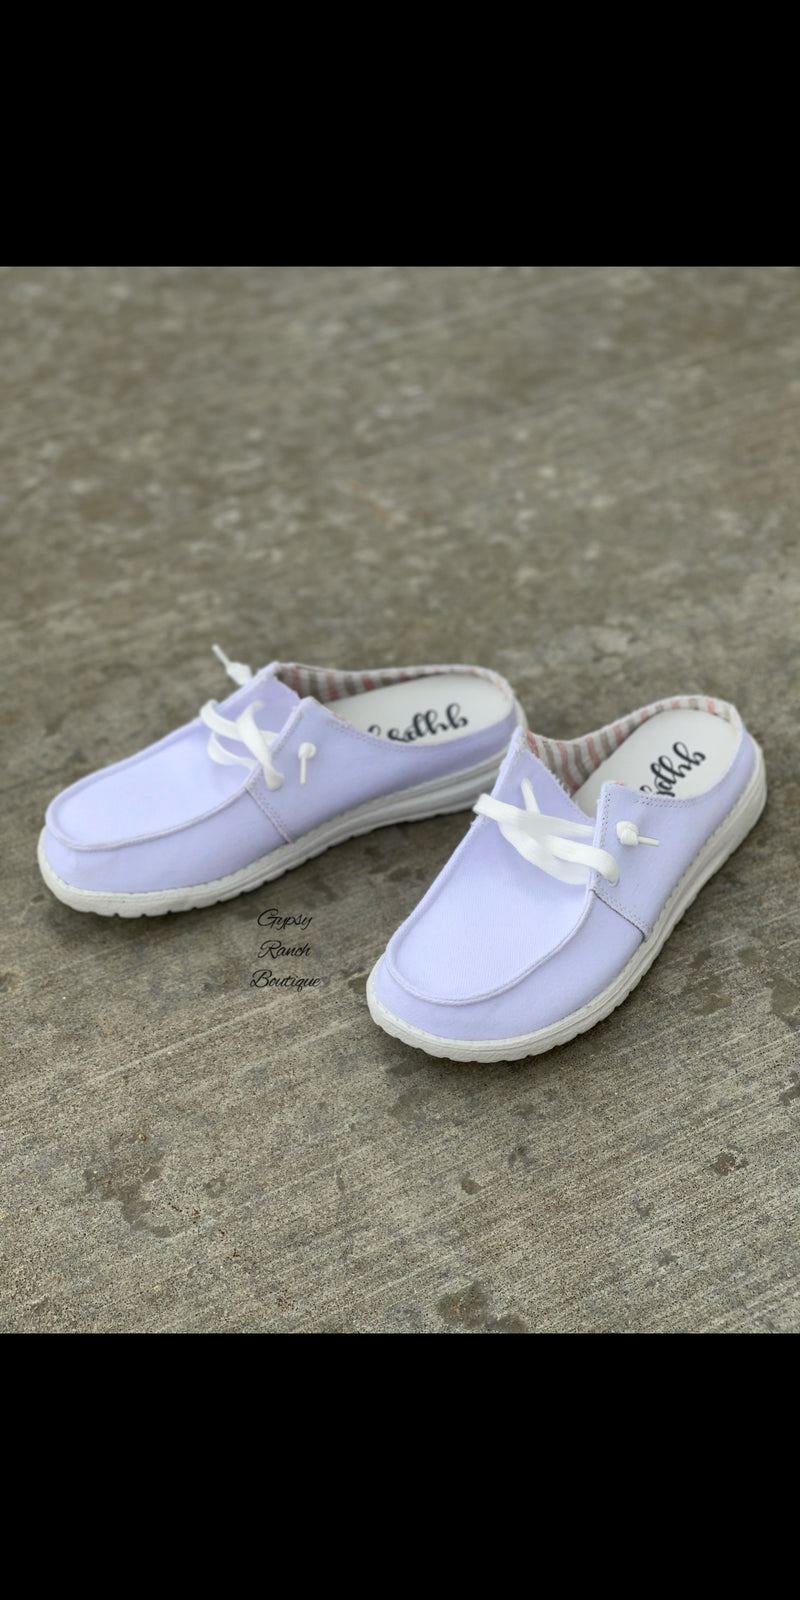 Sailor Gypsy Jazz WHITE Slip On Shoes